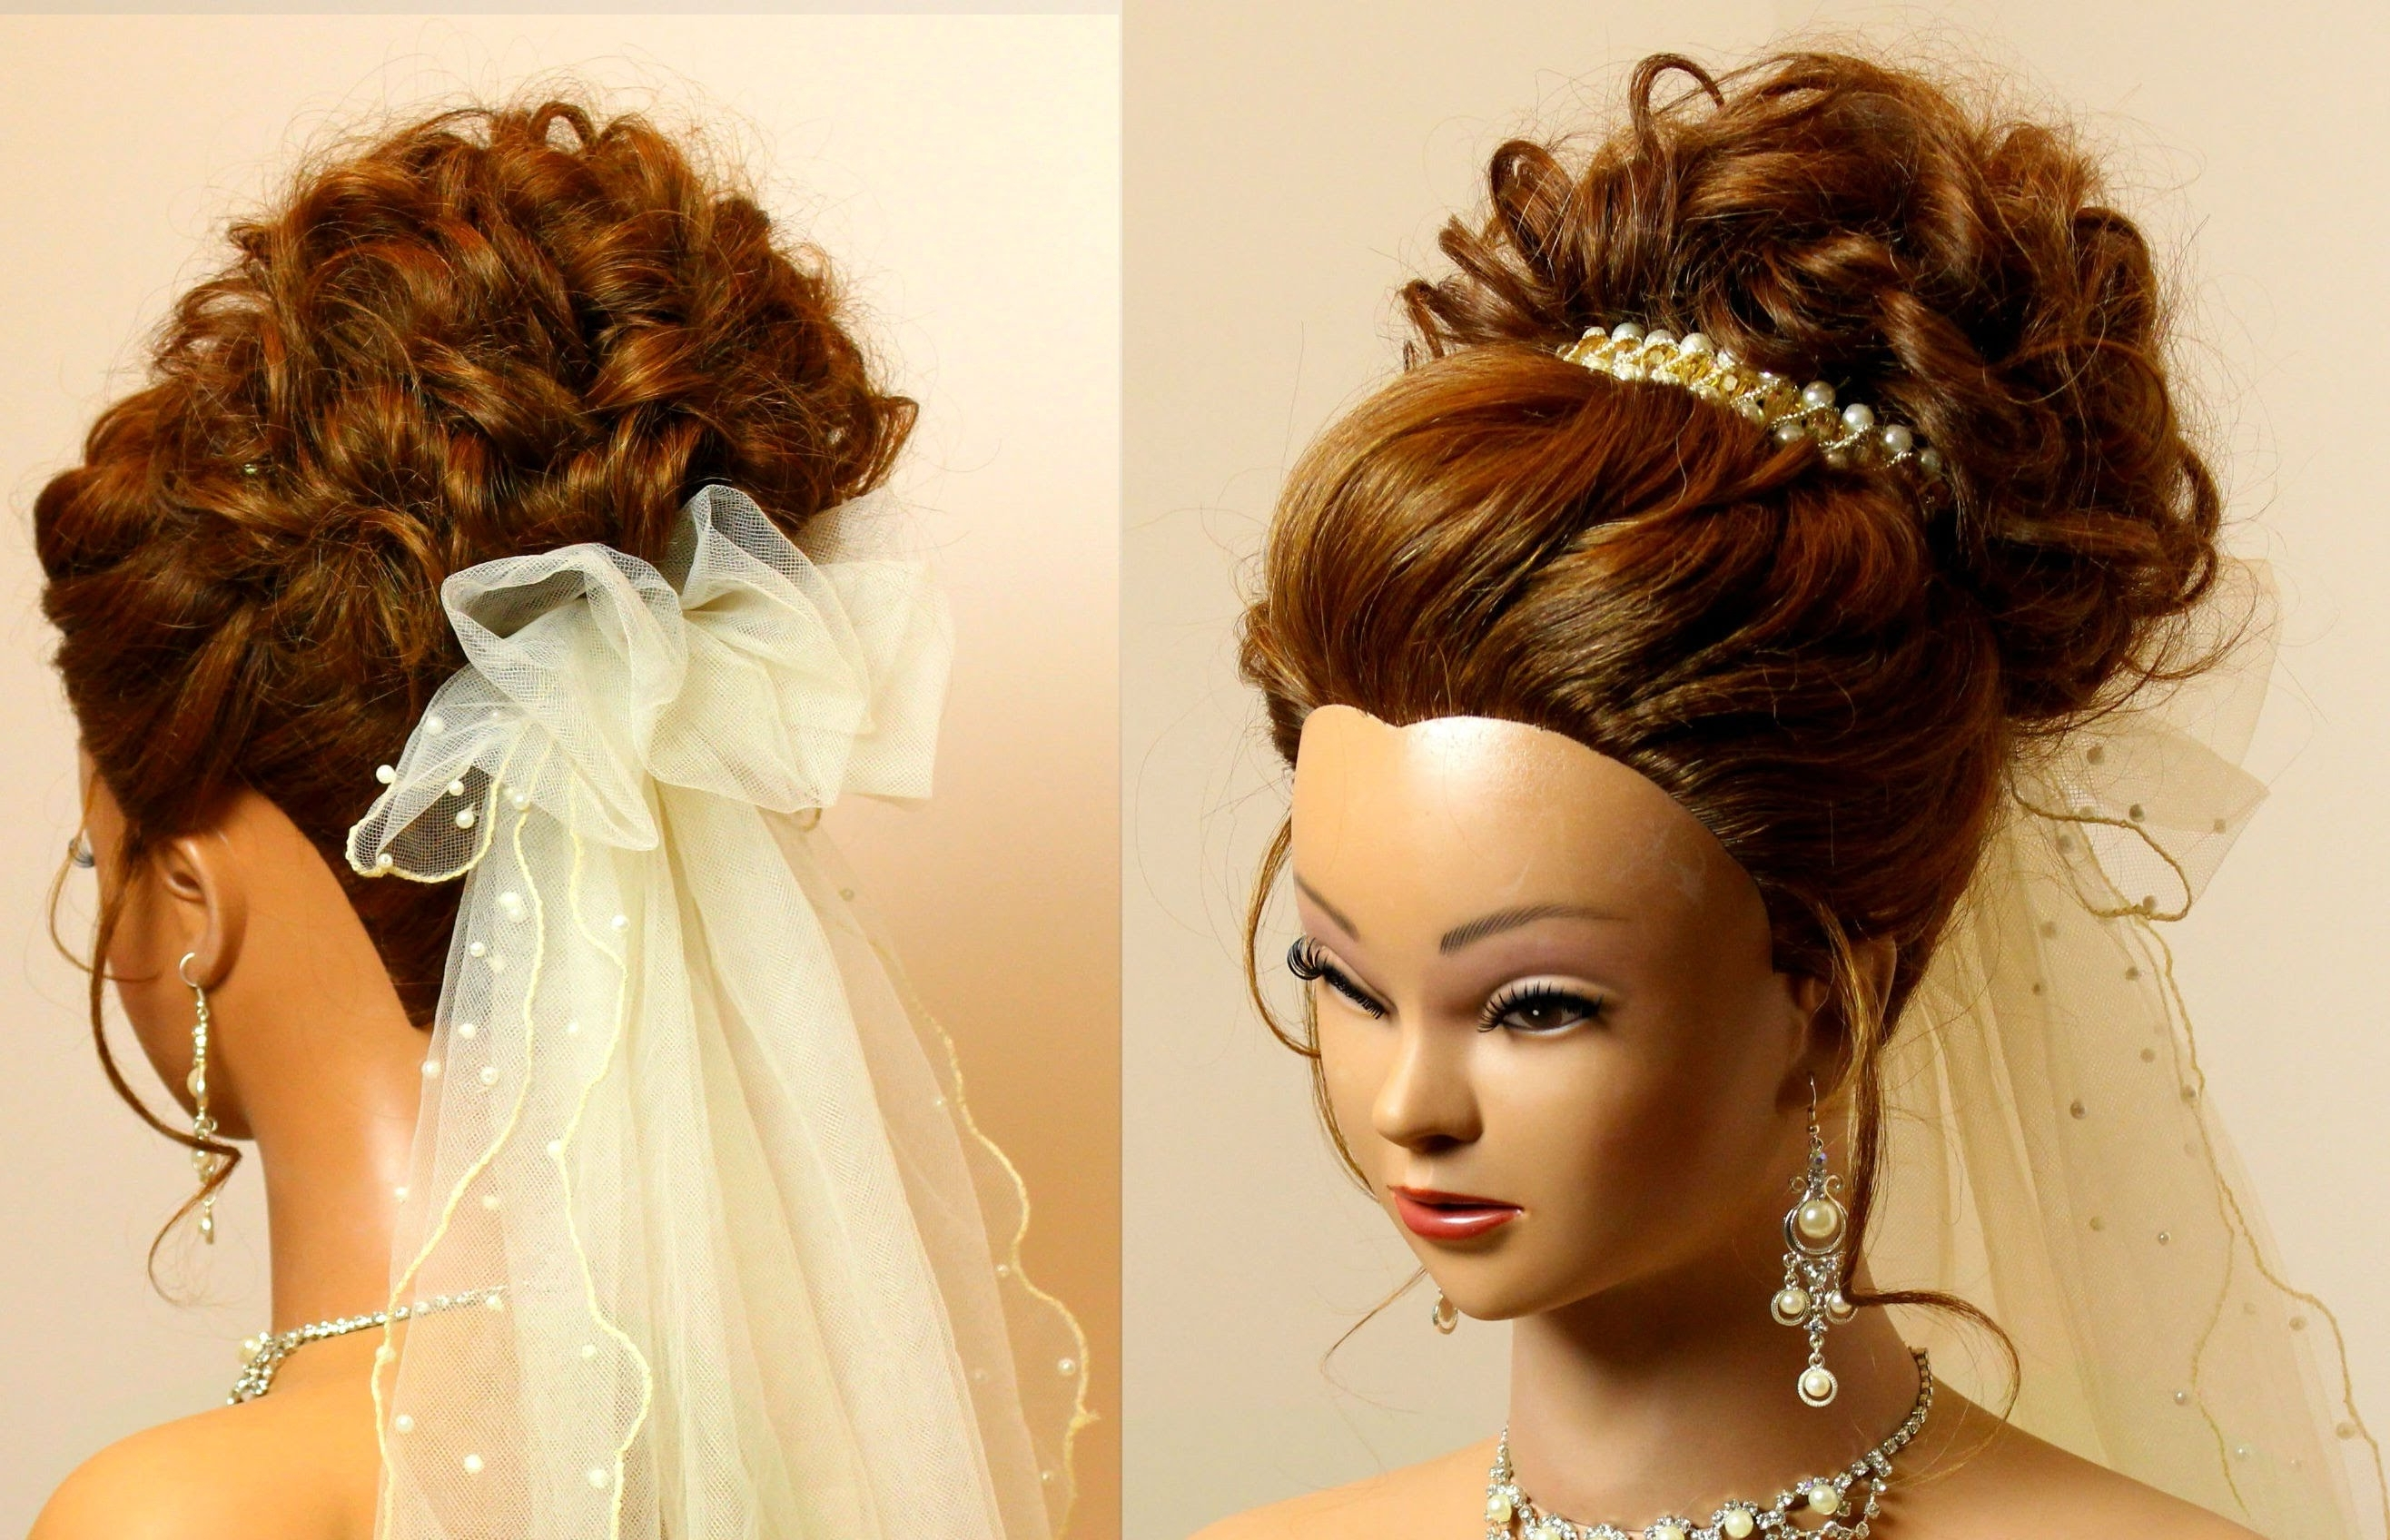 Widely Used Hair Up Wedding Hairstyles Intended For Wedding Hairstyles For Long Hair Updo – Hairstyles Inspiring (View 15 of 15)